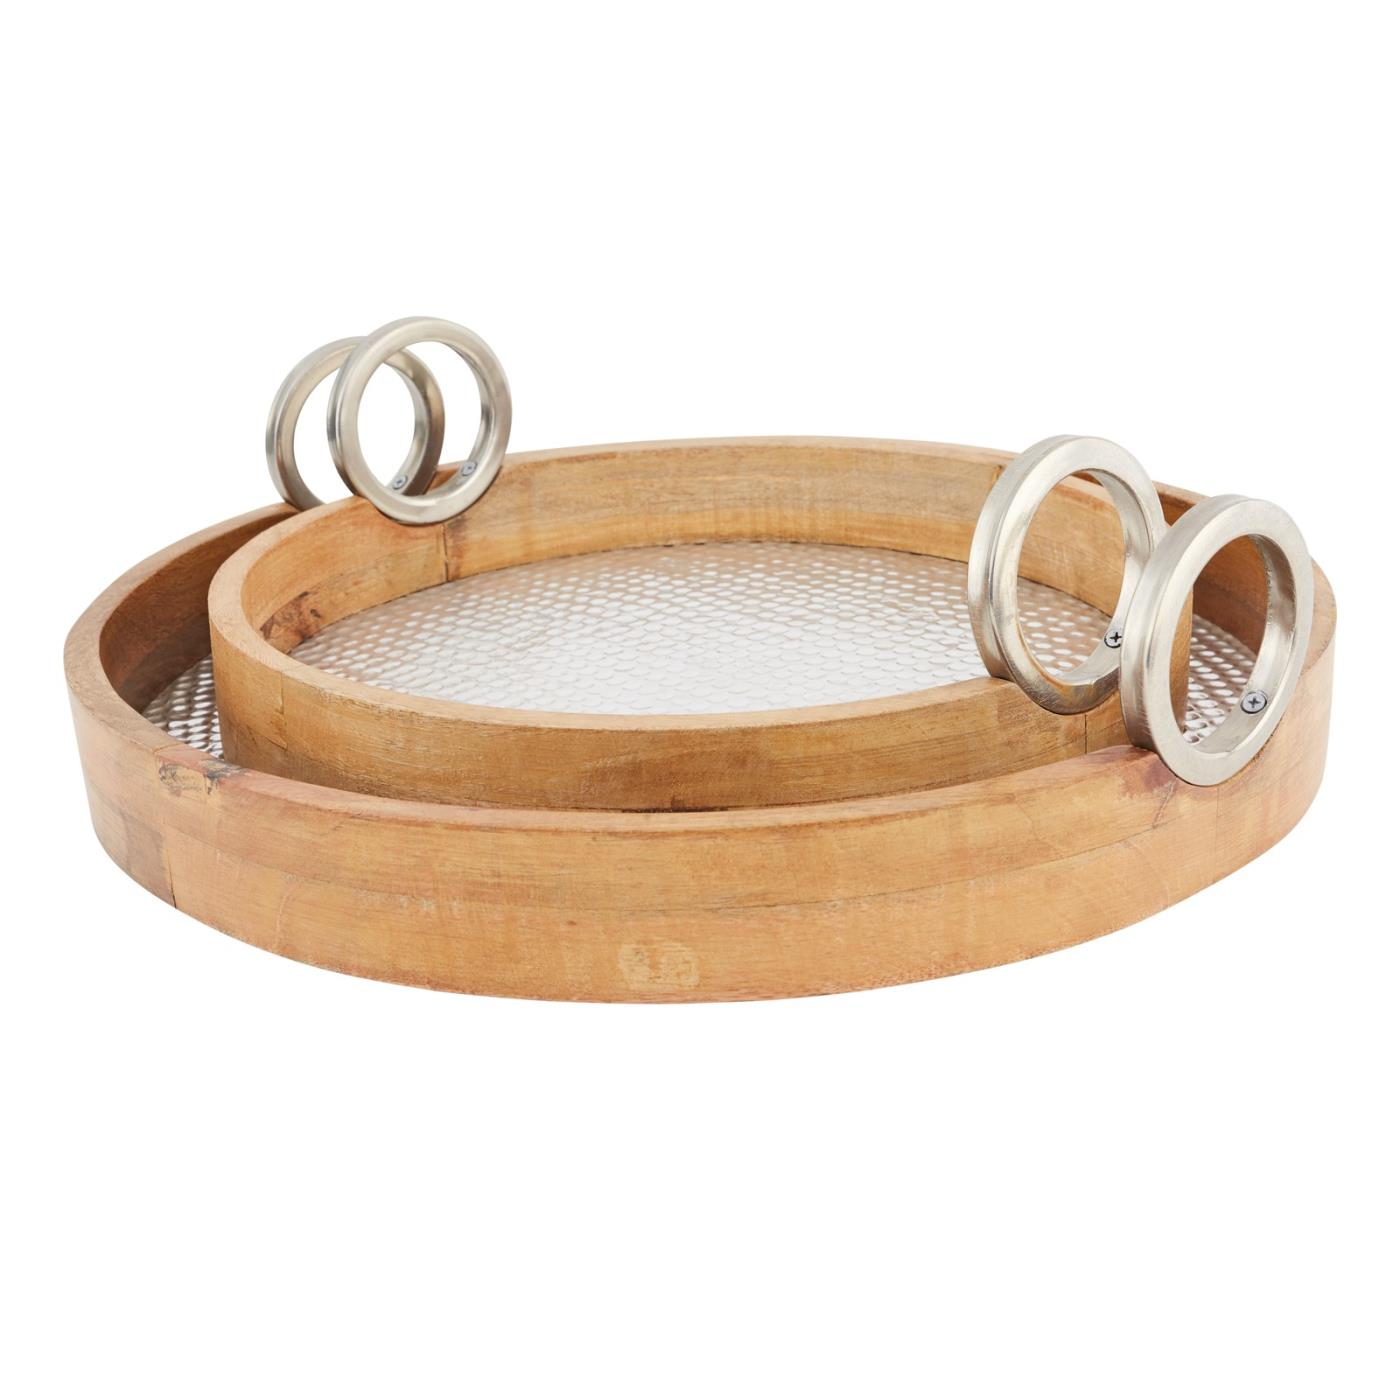 Embossed Round Wood Tray